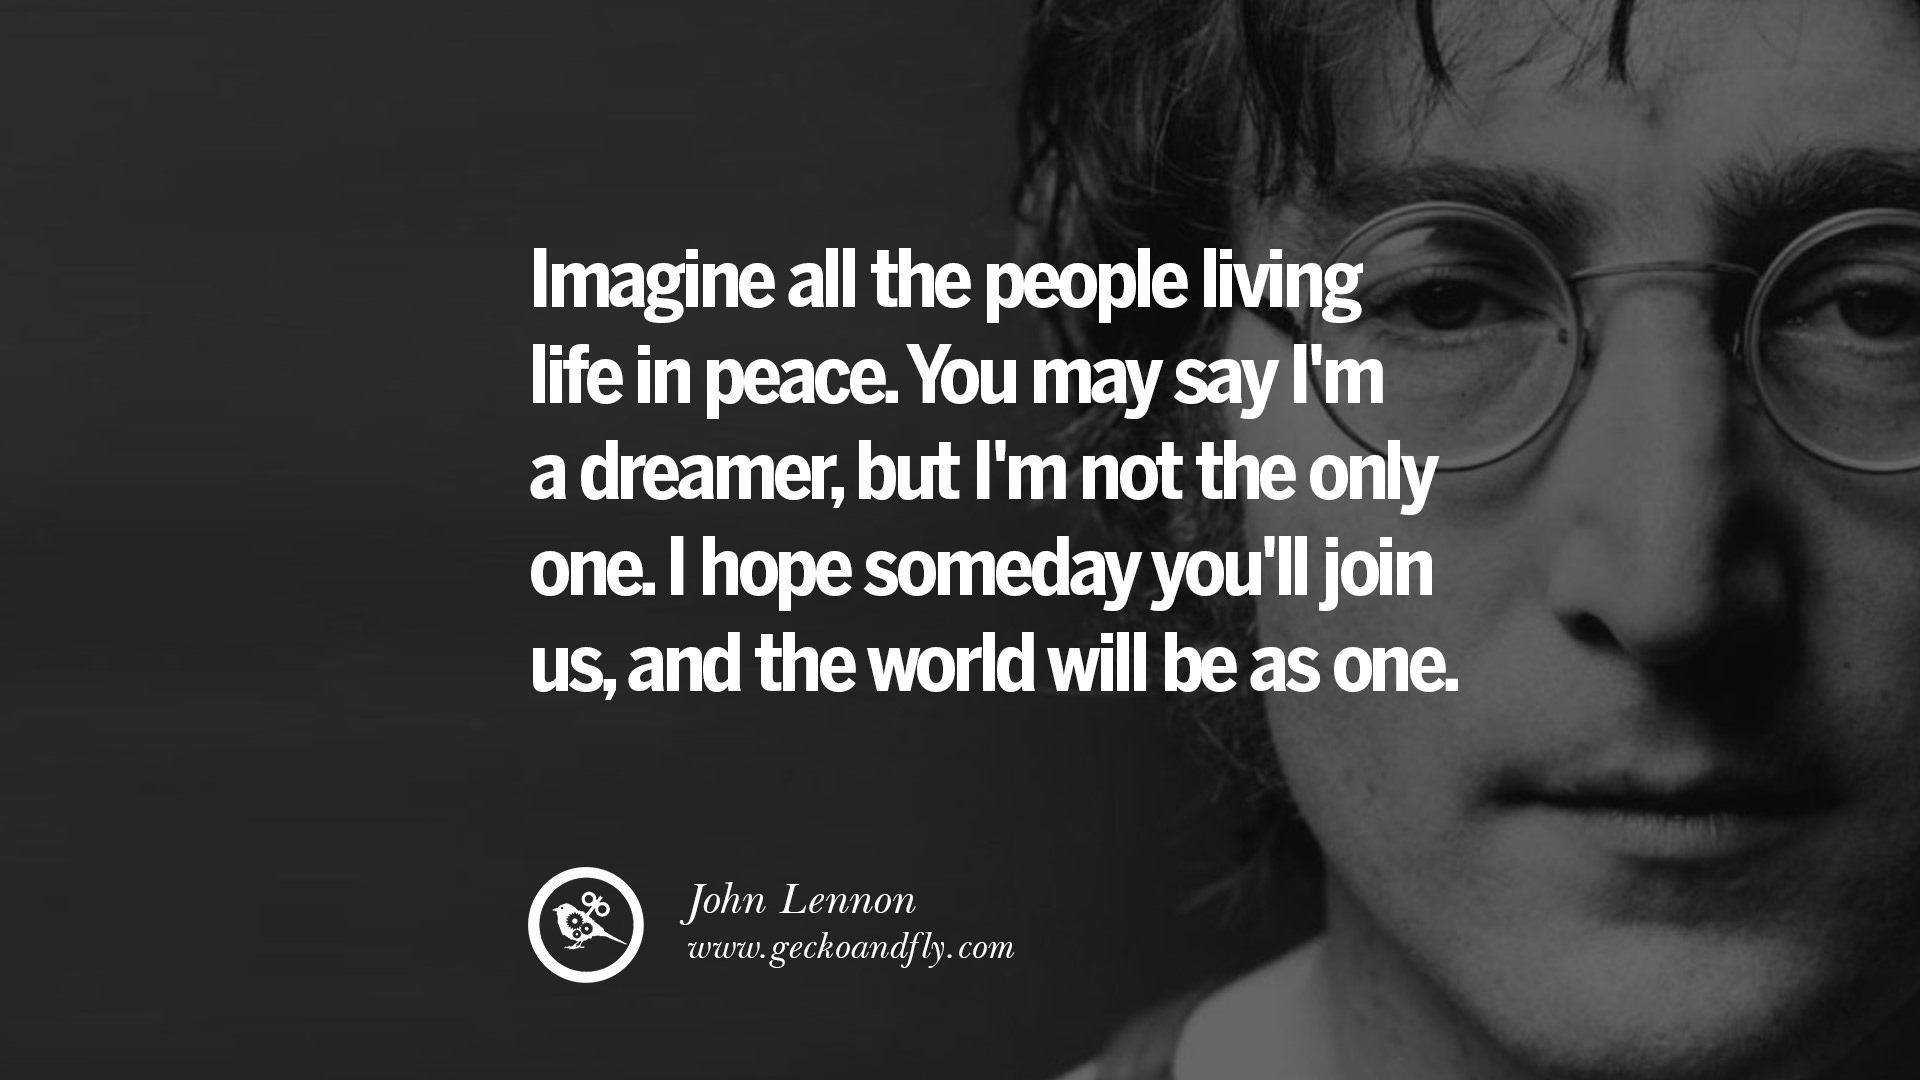 Imagine All The People Living In Peace You May Say Im A Dreamer But Not Only One I Hope Someday Youll Join Us And World Will Be As